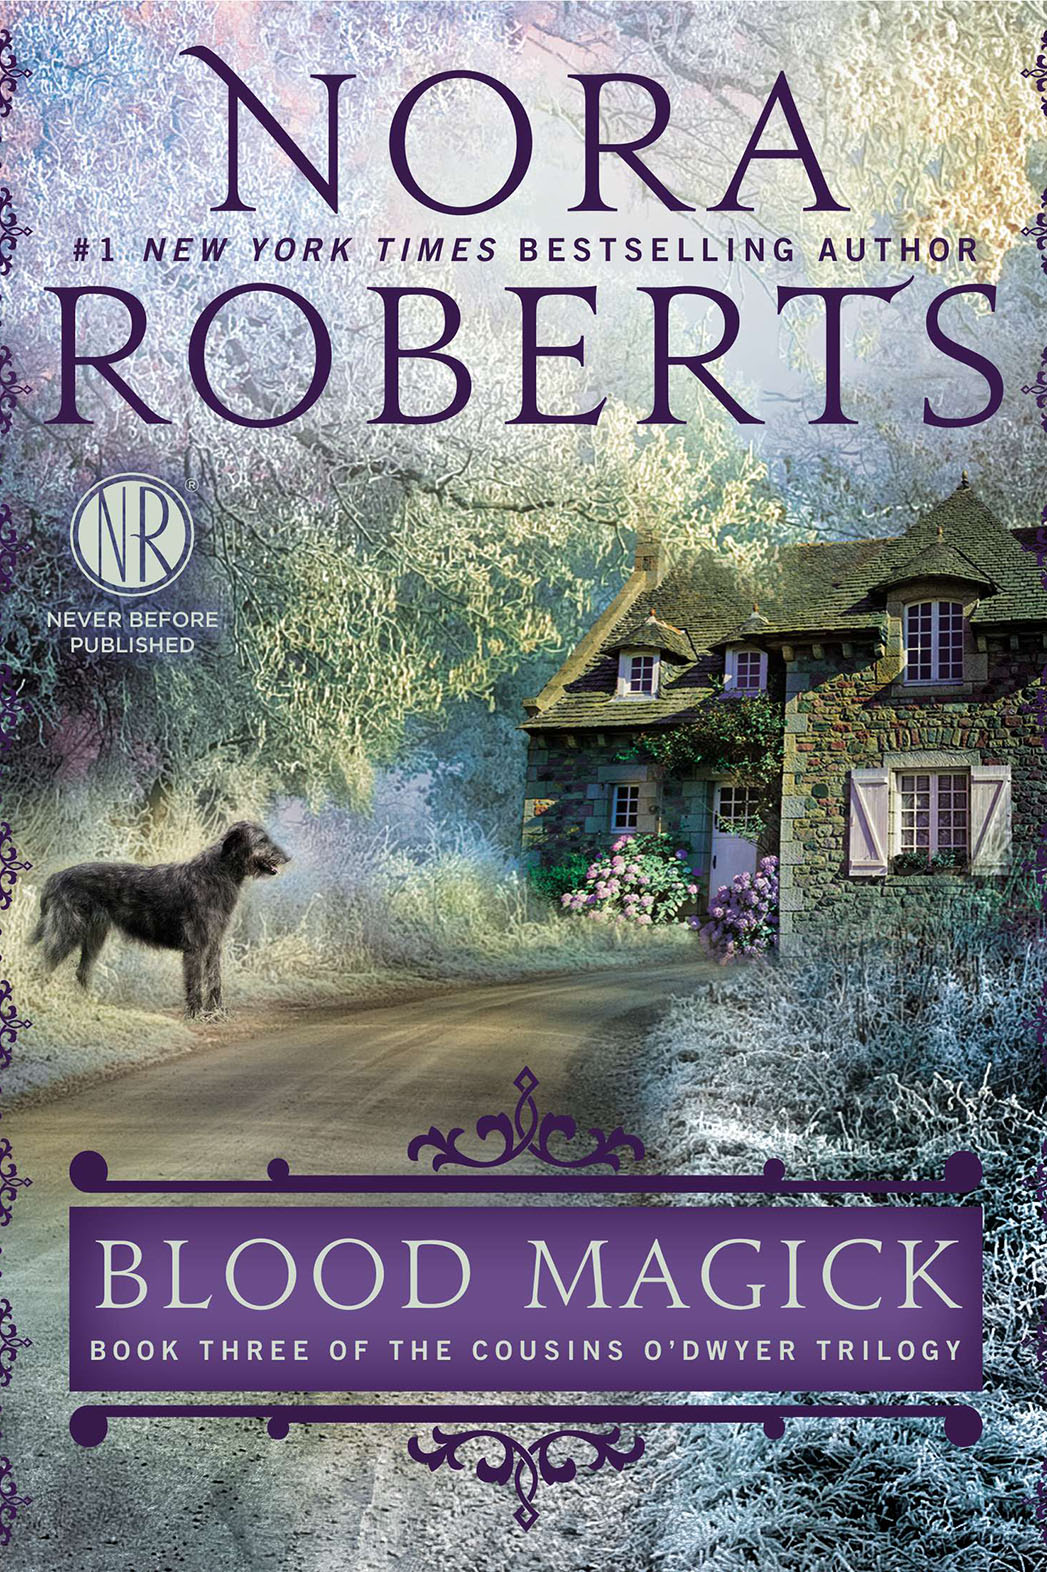 Blood Magick Cover - P 2015